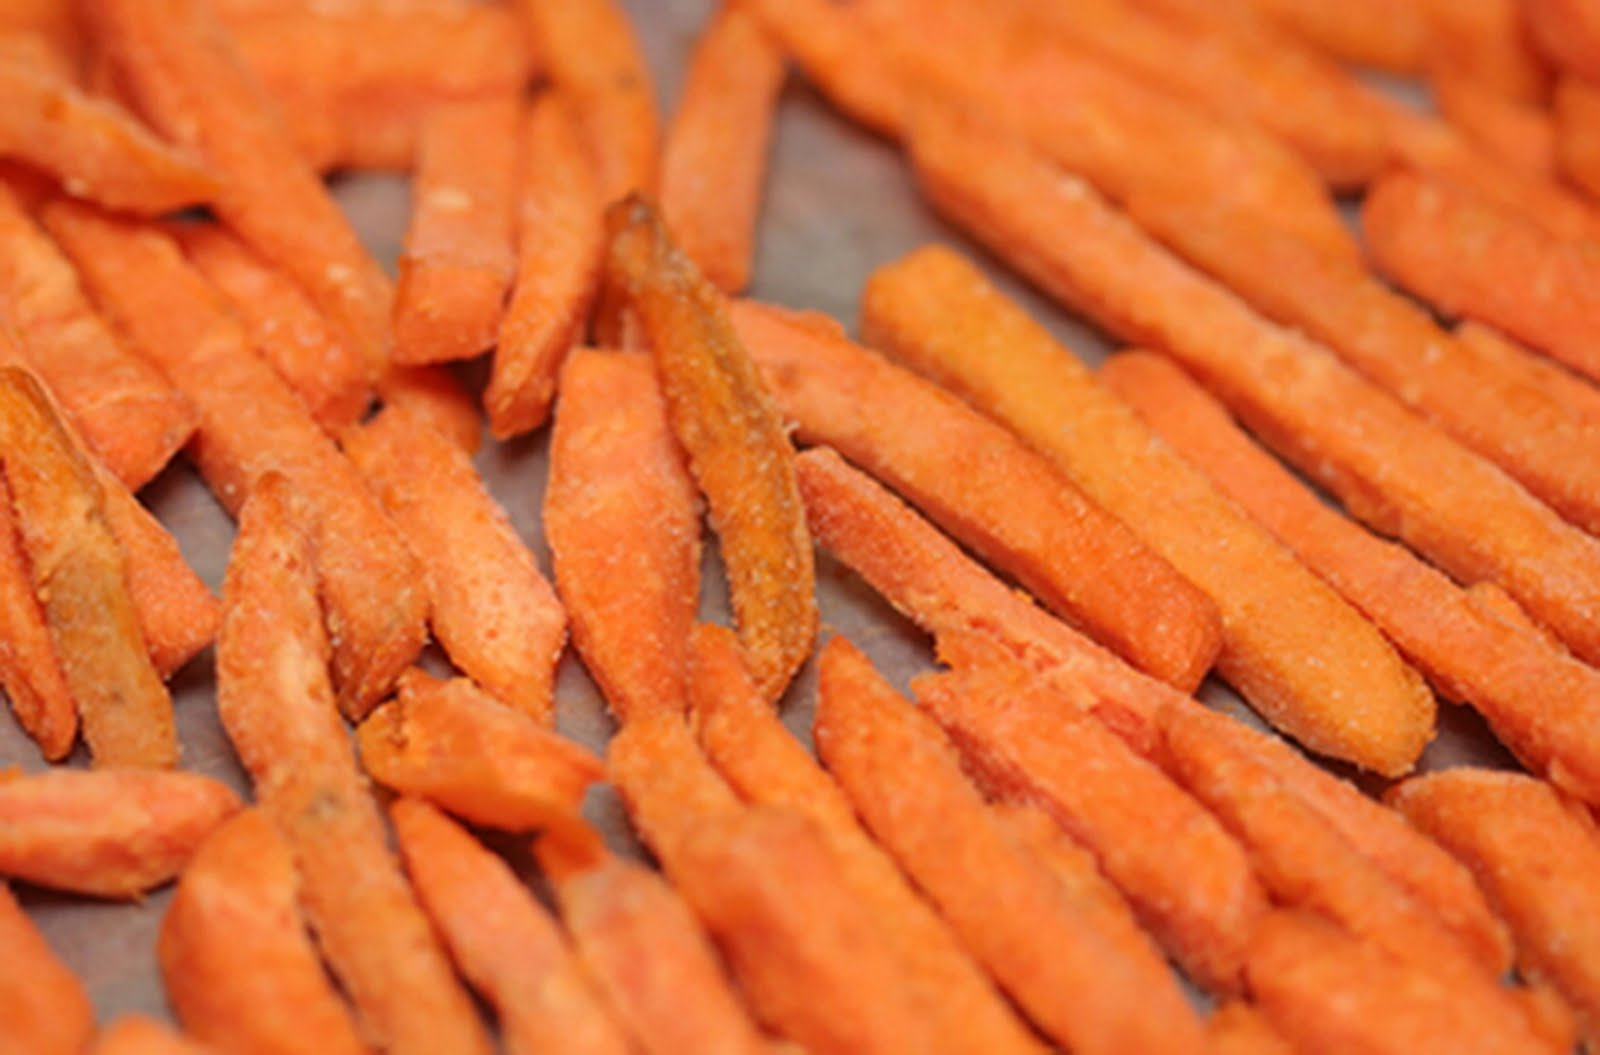 Crispy Baked Sweet Potato Fries | North Carolina Sweet Potatoes